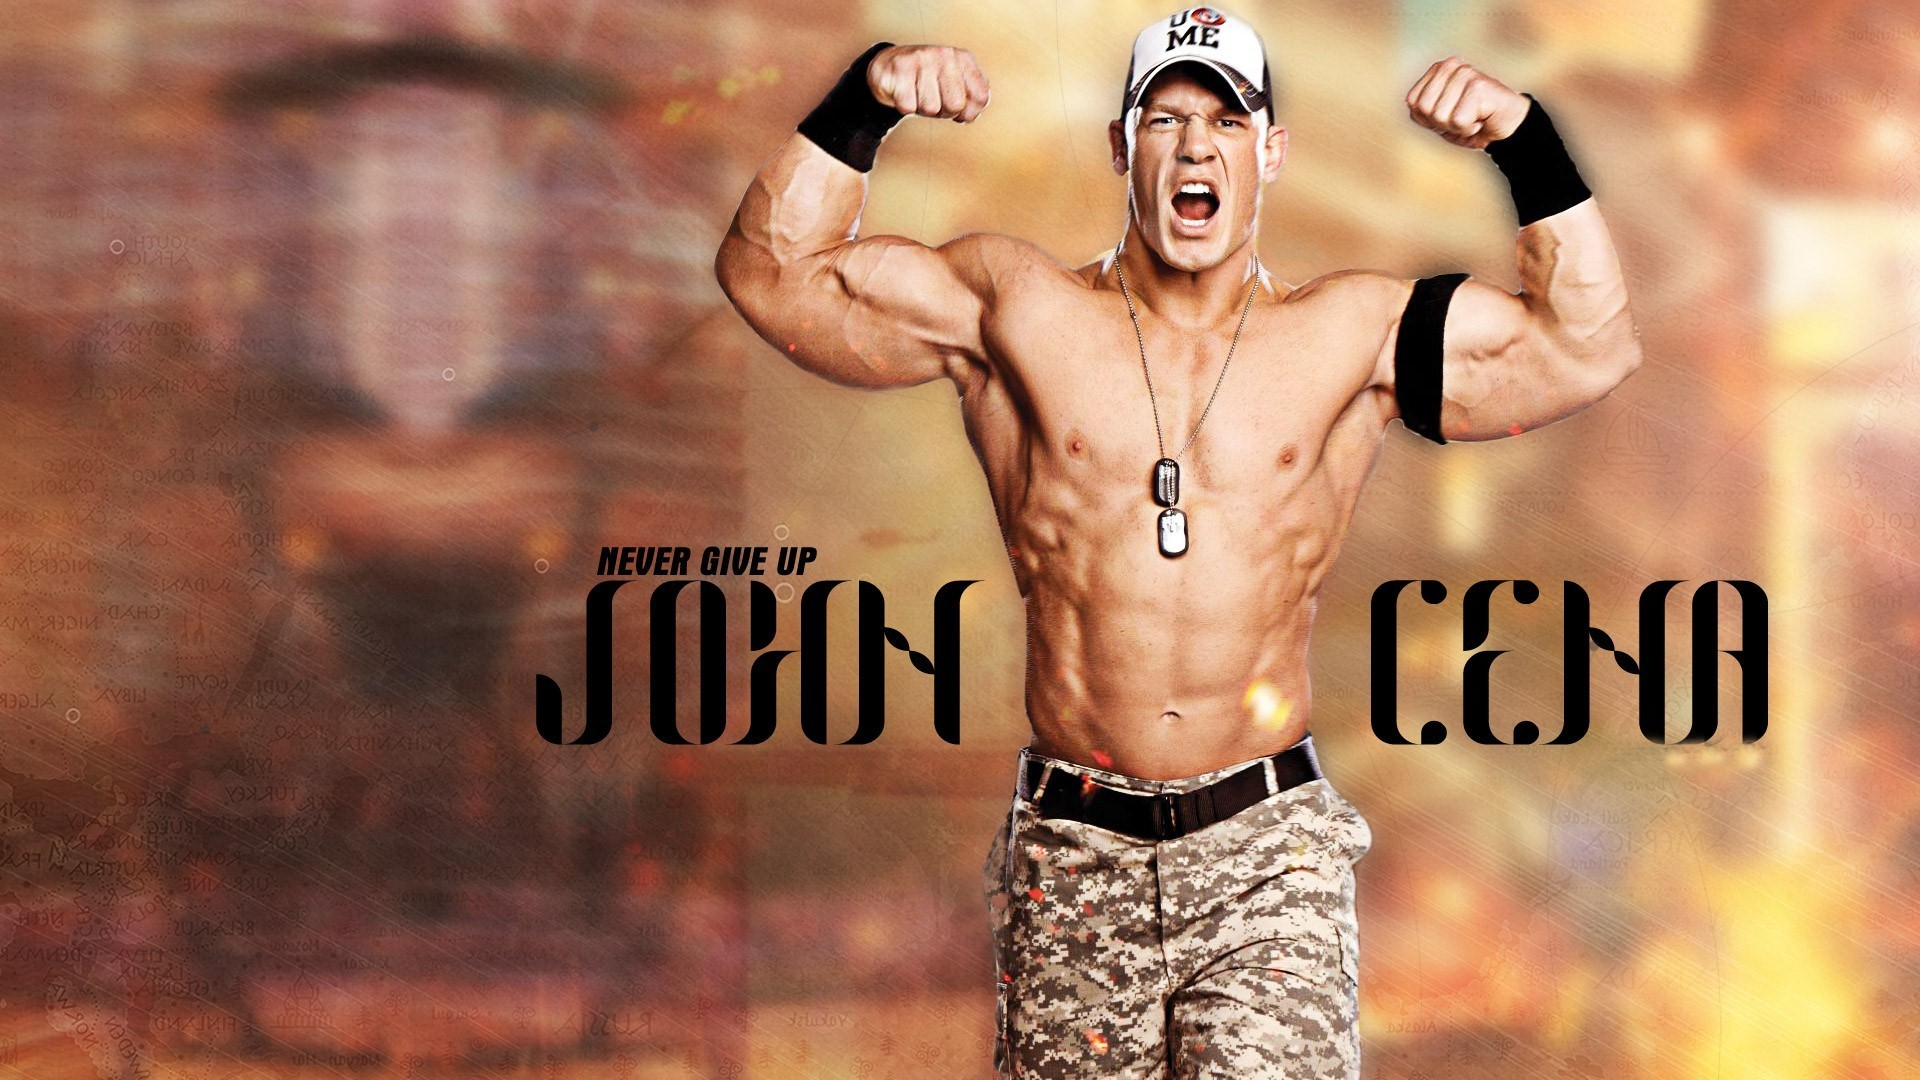 John Cena WWE Star Wallpaper HD Wallpapers 1920x1080